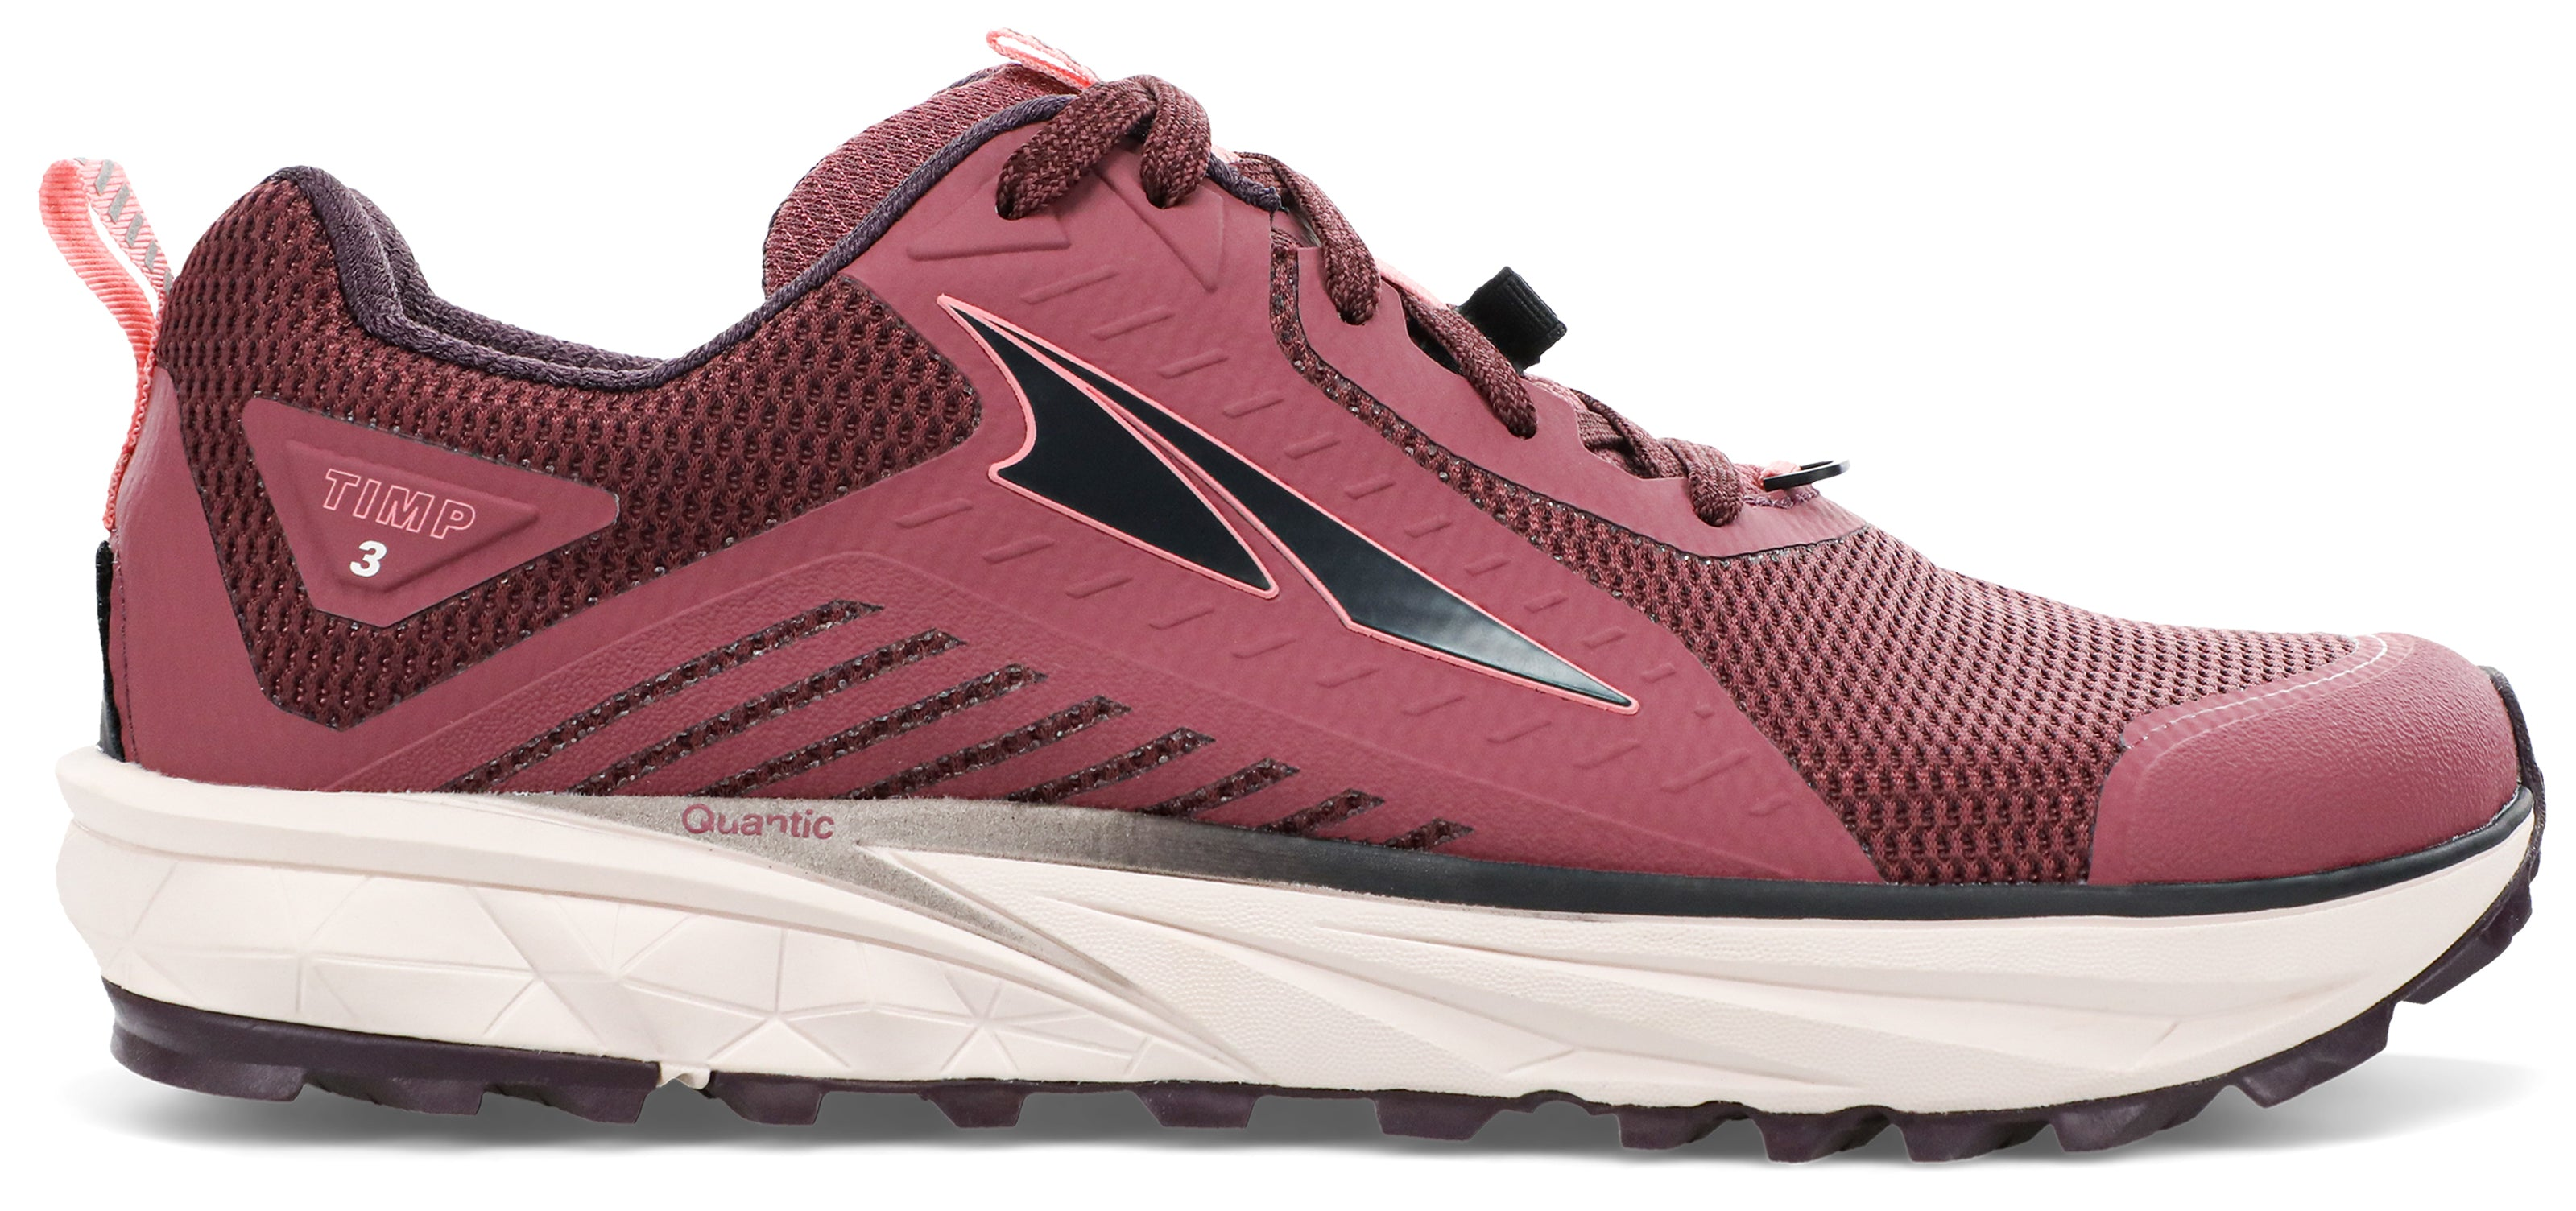 Women's Altra Timp 3 Trail Running Shoe in Plum/Coral from the side